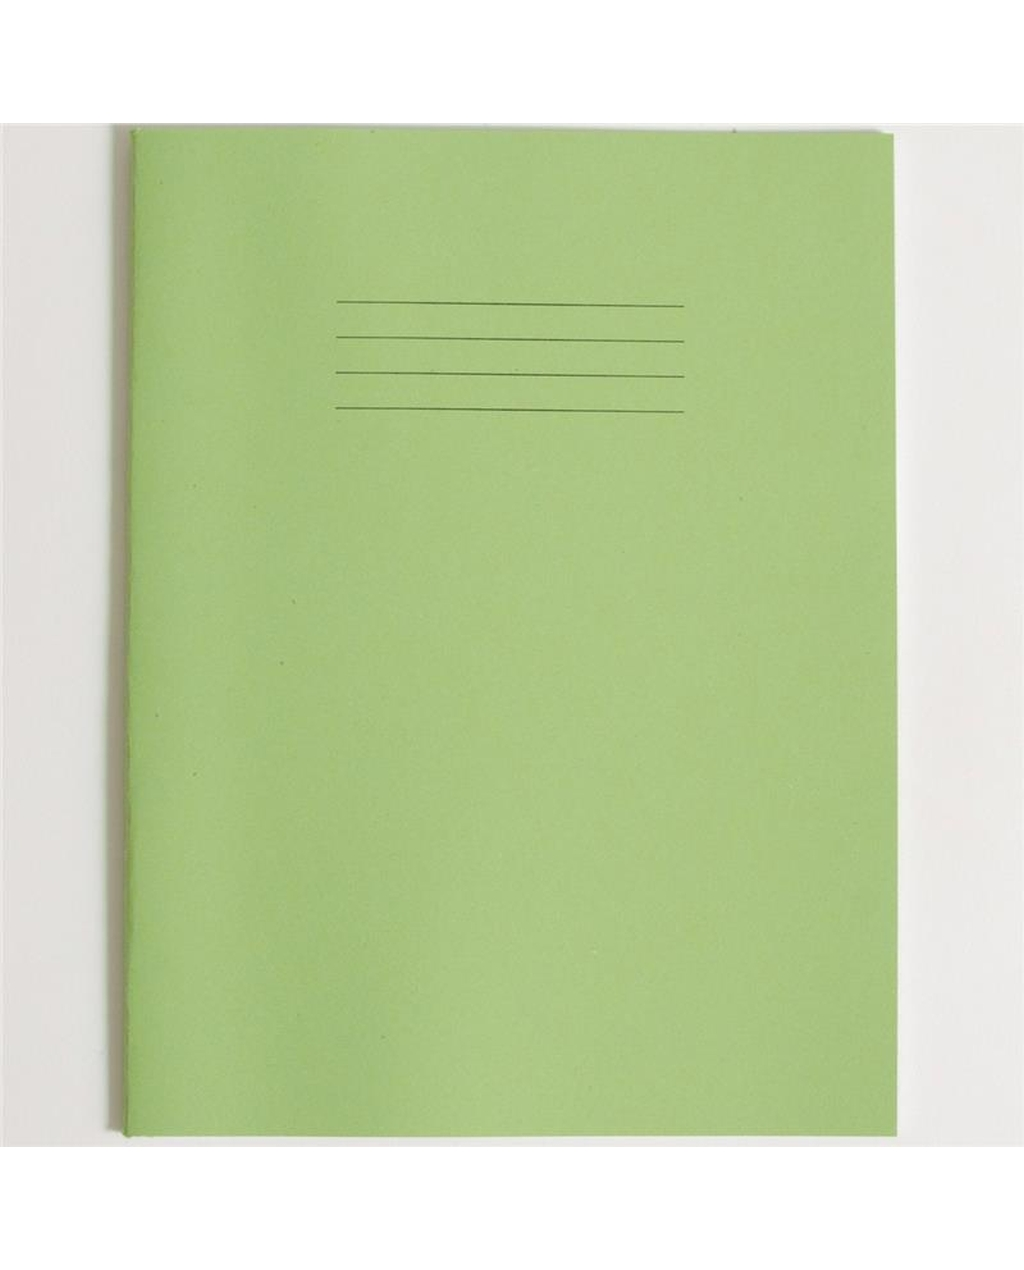 Exercise Book A4+ (330 x 250mm) Light Green Cover12mm Ruled 80 Pages